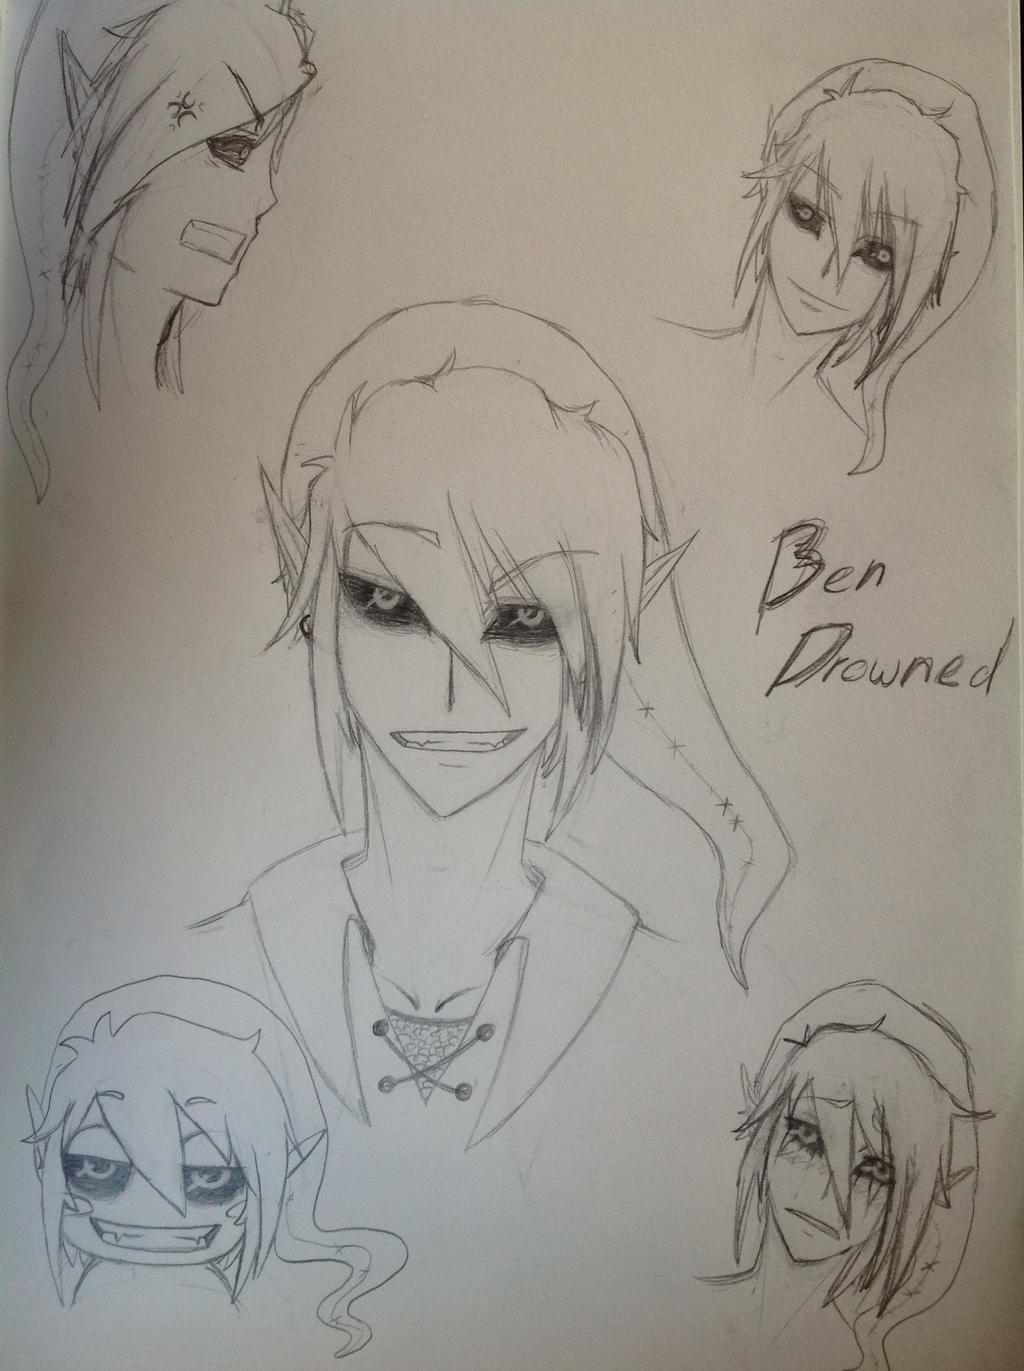 Creepypasta - Ben drowned by Mino-cake on DeviantArt